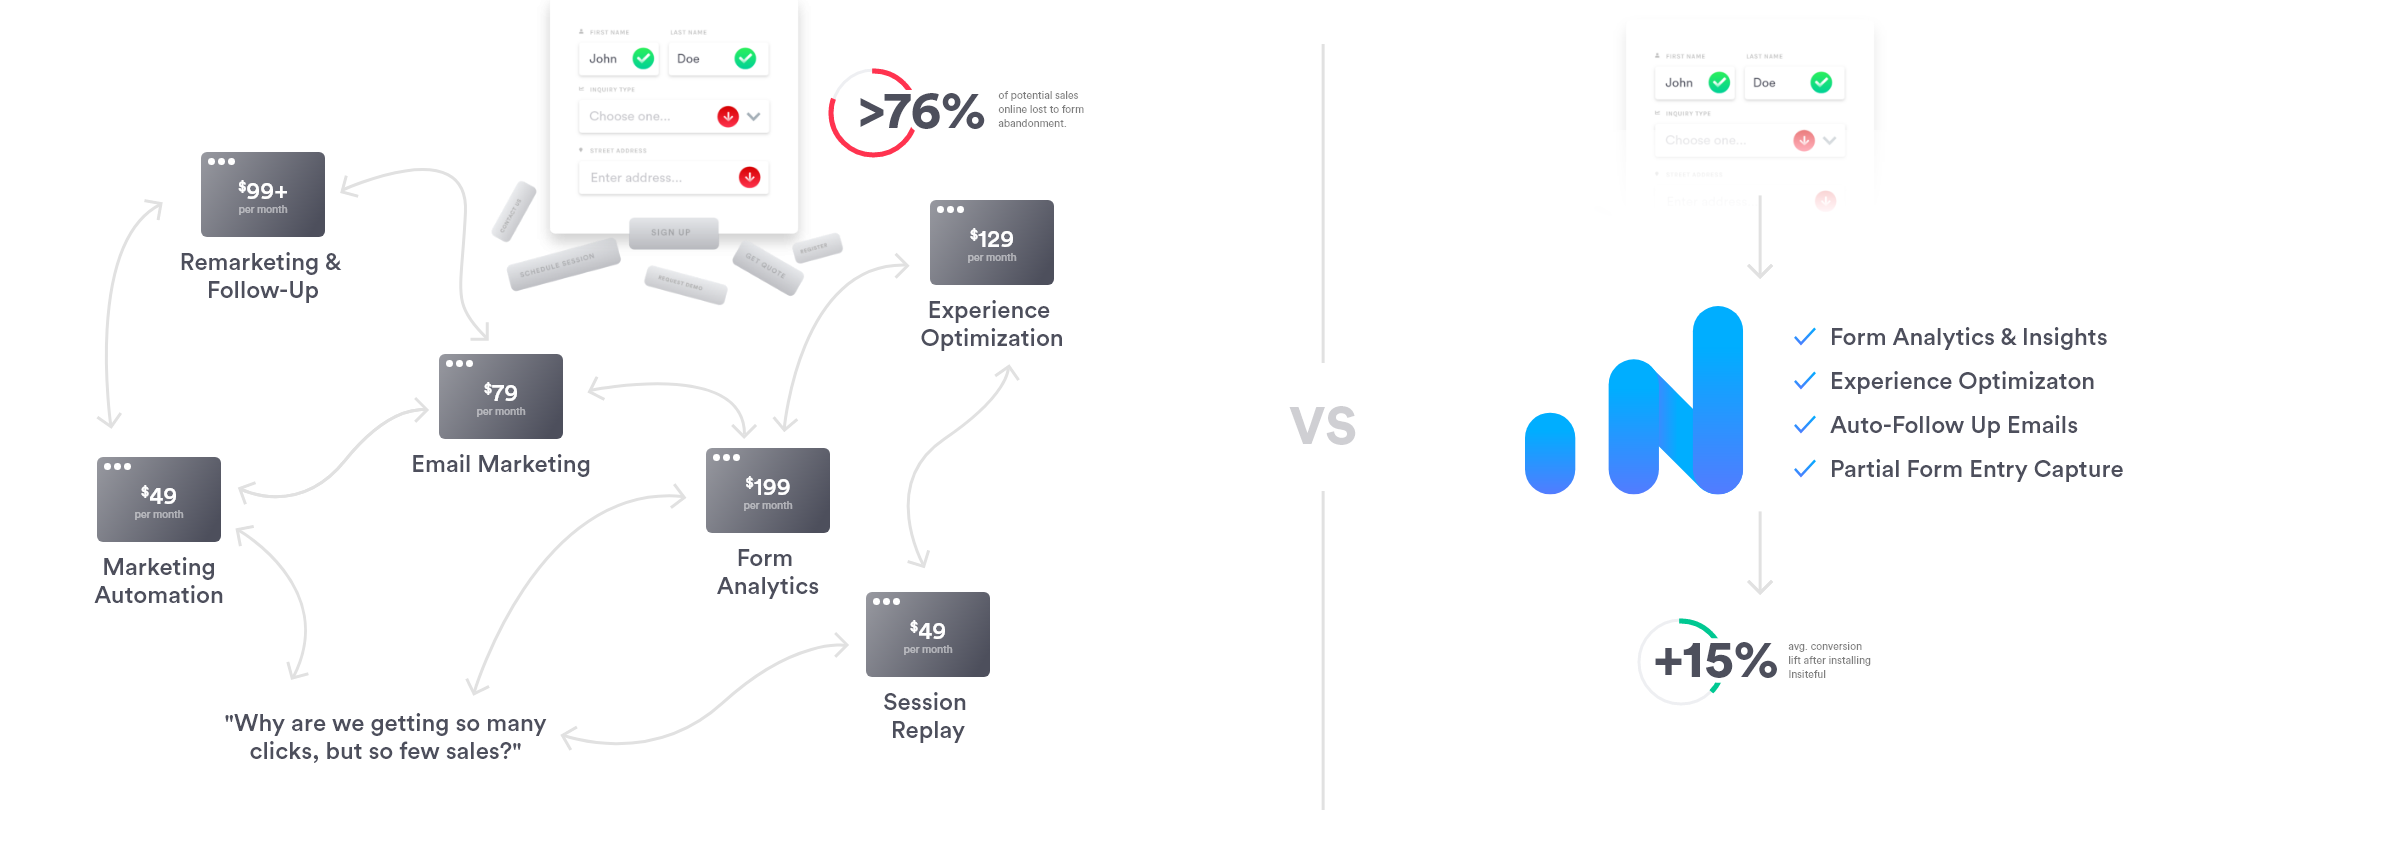 Insiteful: Value Proposition for Marketing Automation